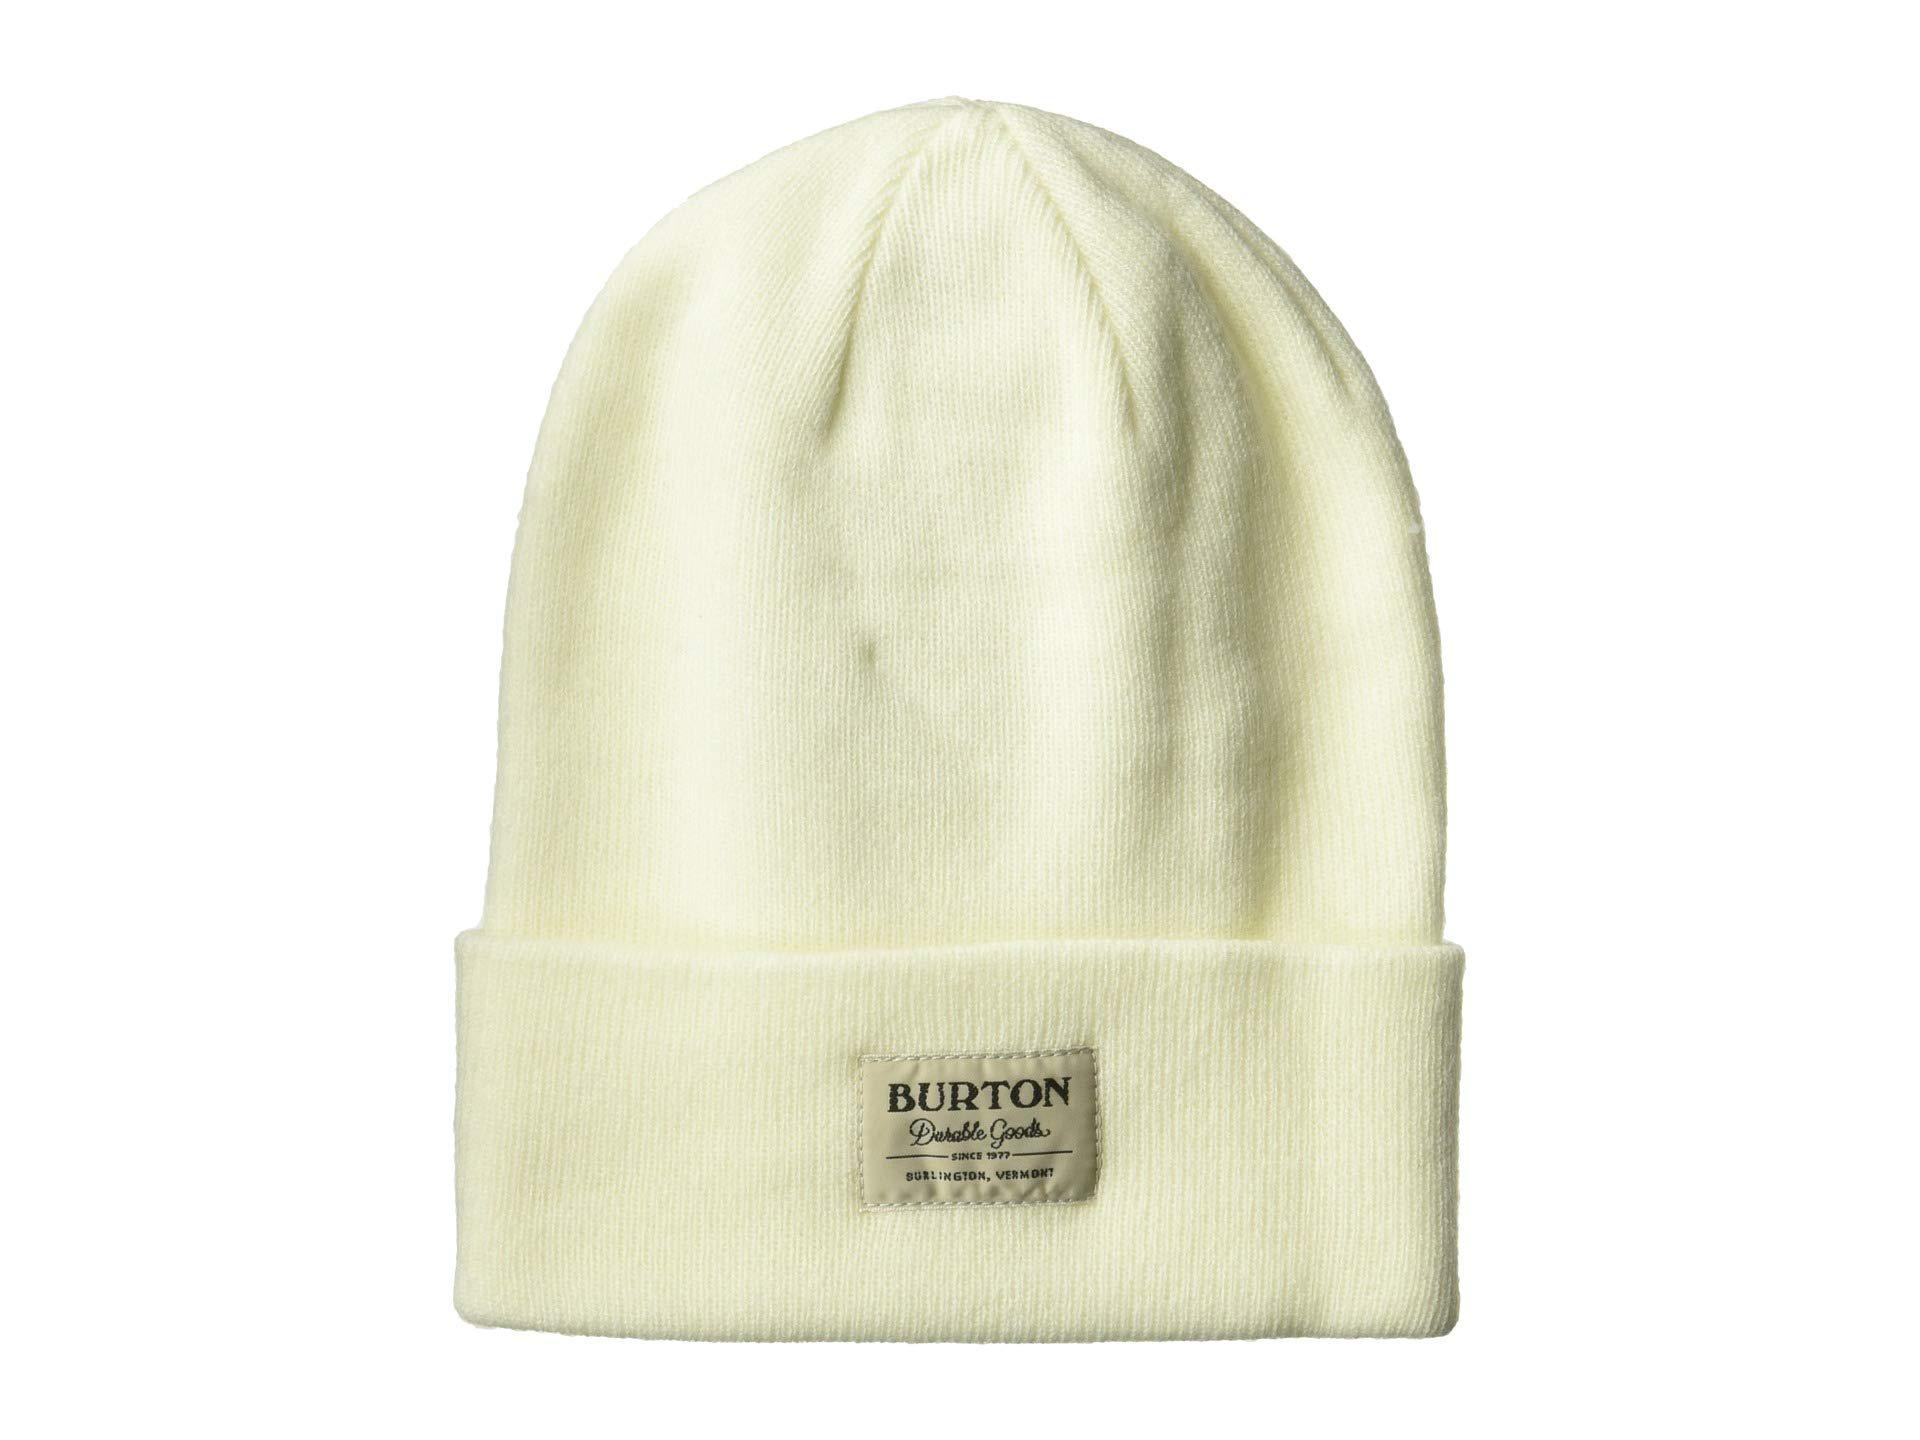 42b3f3c1d14 Lyst - Burton Kactusbunch Tall Beanie (abyss) Beanies in White for Men